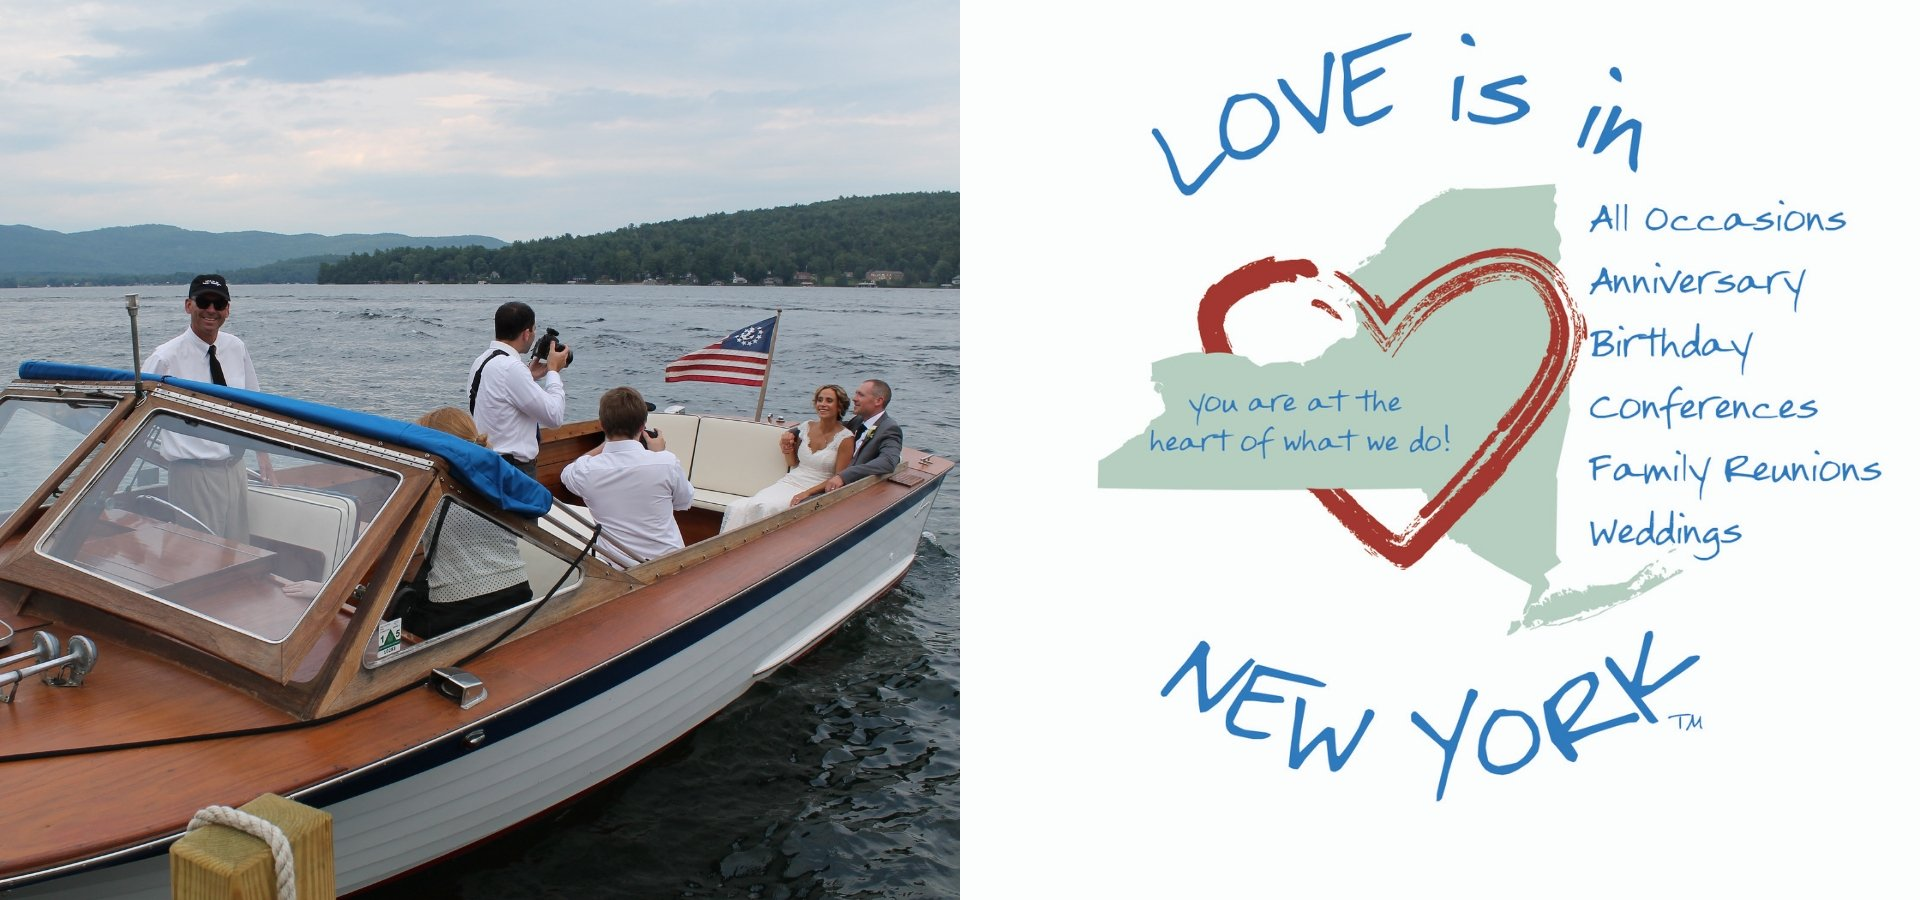 Love is in New York, in the Adirondacks and on Lake George